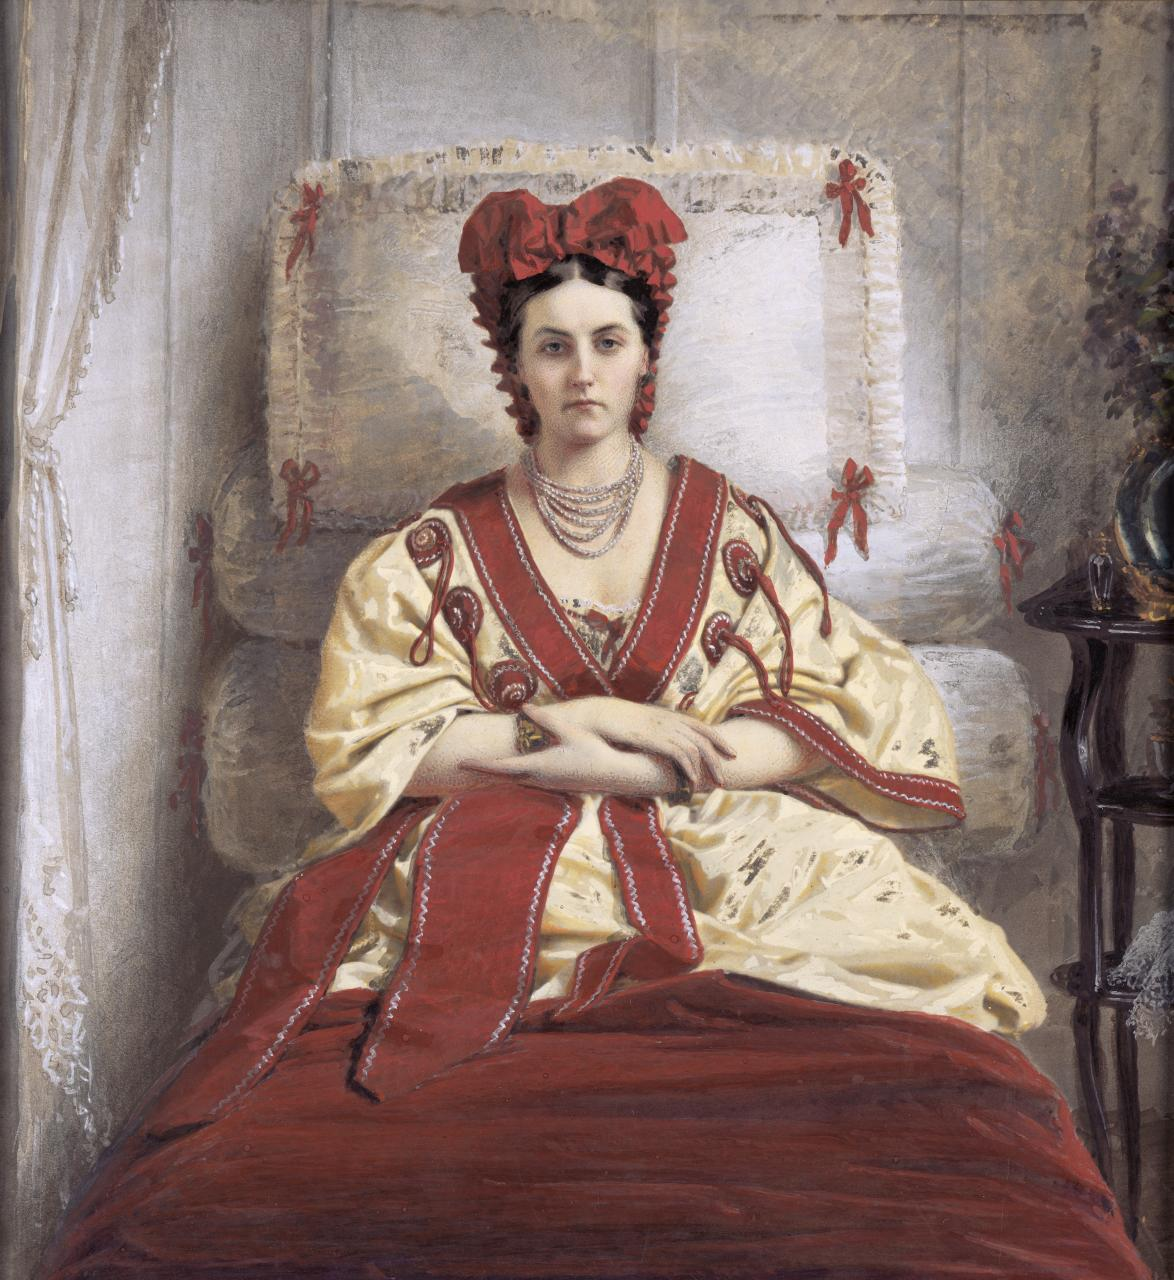 Pierre-Louis Pierson, French (1822–1913).  The Countess de Castiglione , ca. 1856–57. Hand colored salt print, 10 11/16 × 10 inches. The Nelson- Atkins Museum of Art, Kansas City, Missouri. Gift of the Hall Family Foundation, 2015.67.44.